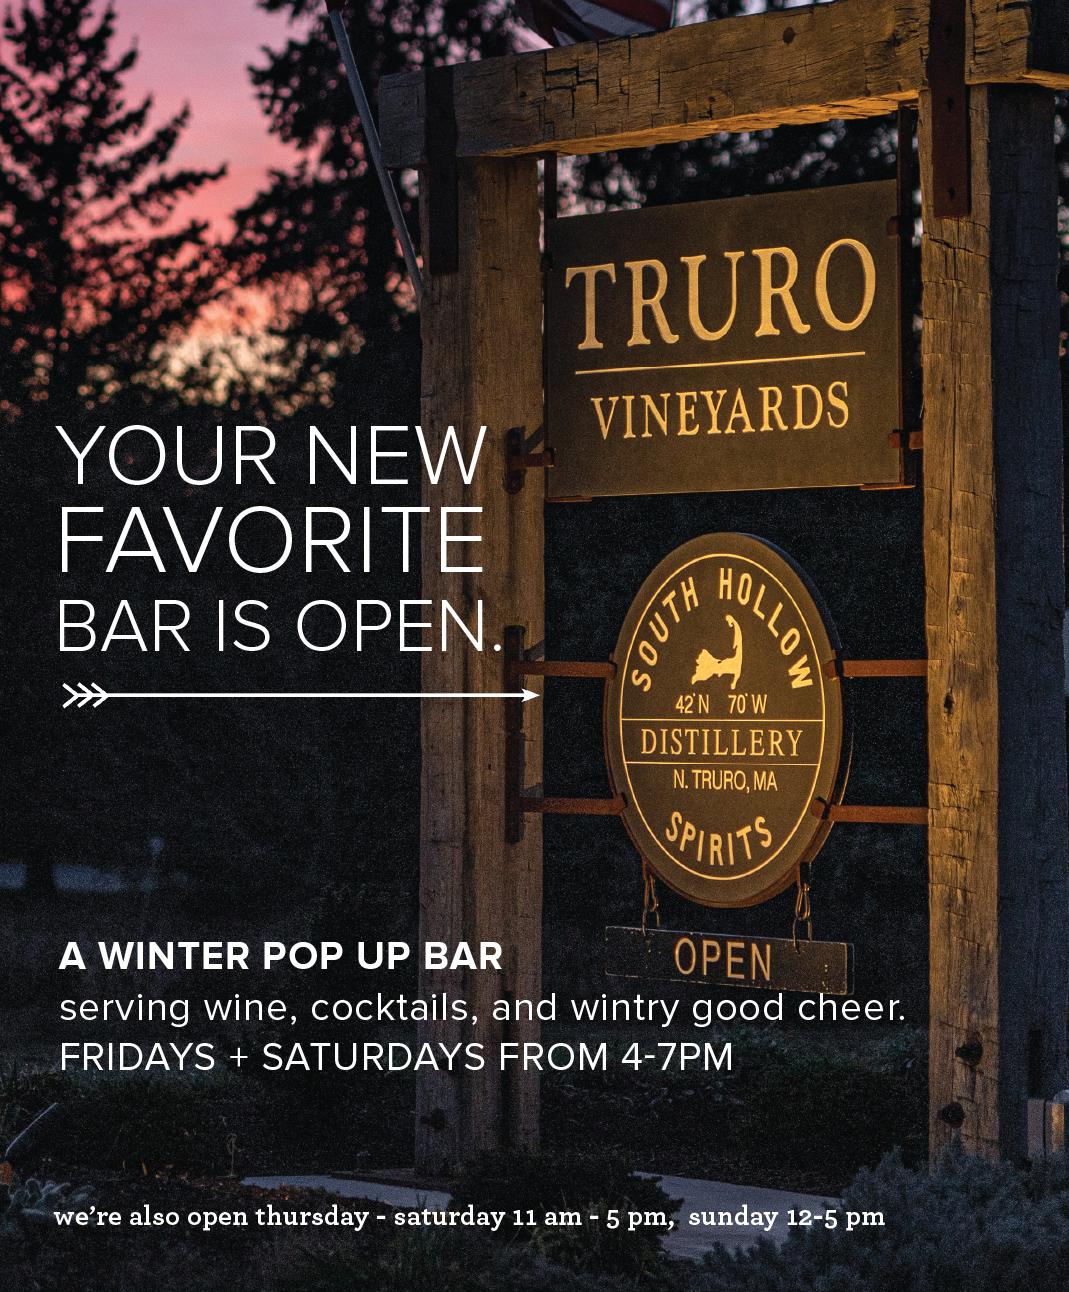 Tours and Tastings times and info South Hollow Spirits Truro MA